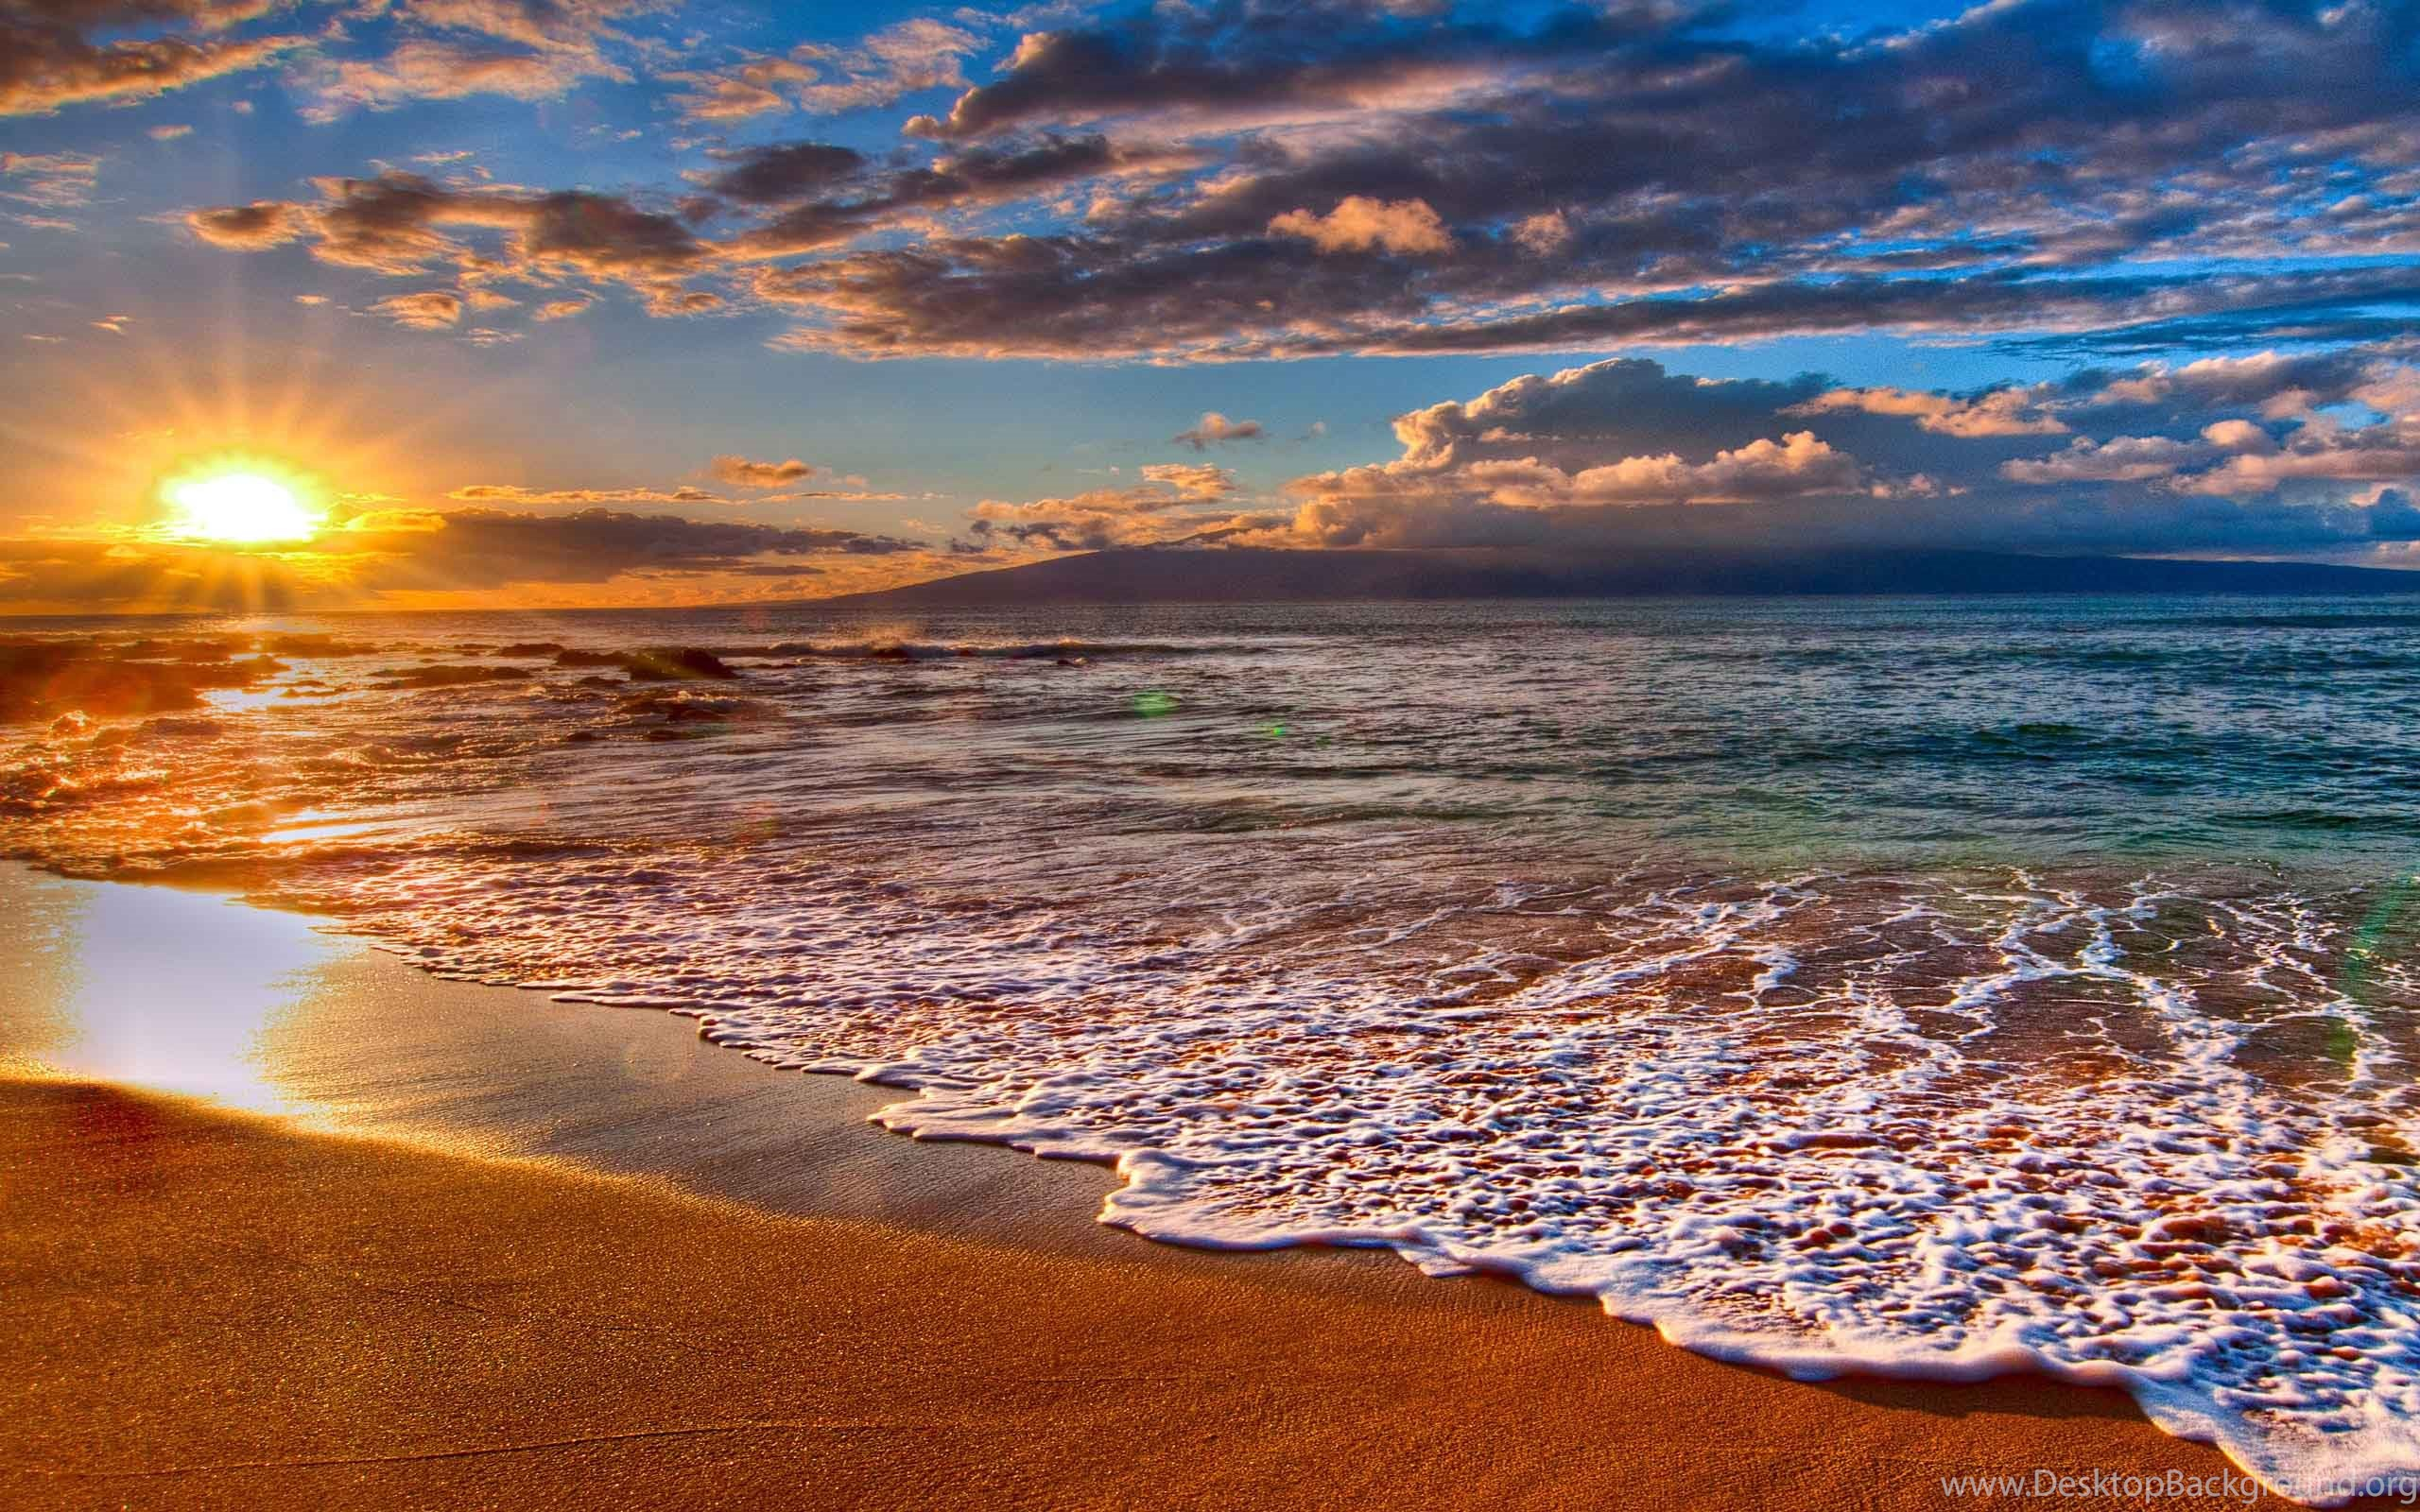 Beach Nice Hd With Sunset Wallpapers Desktop Background